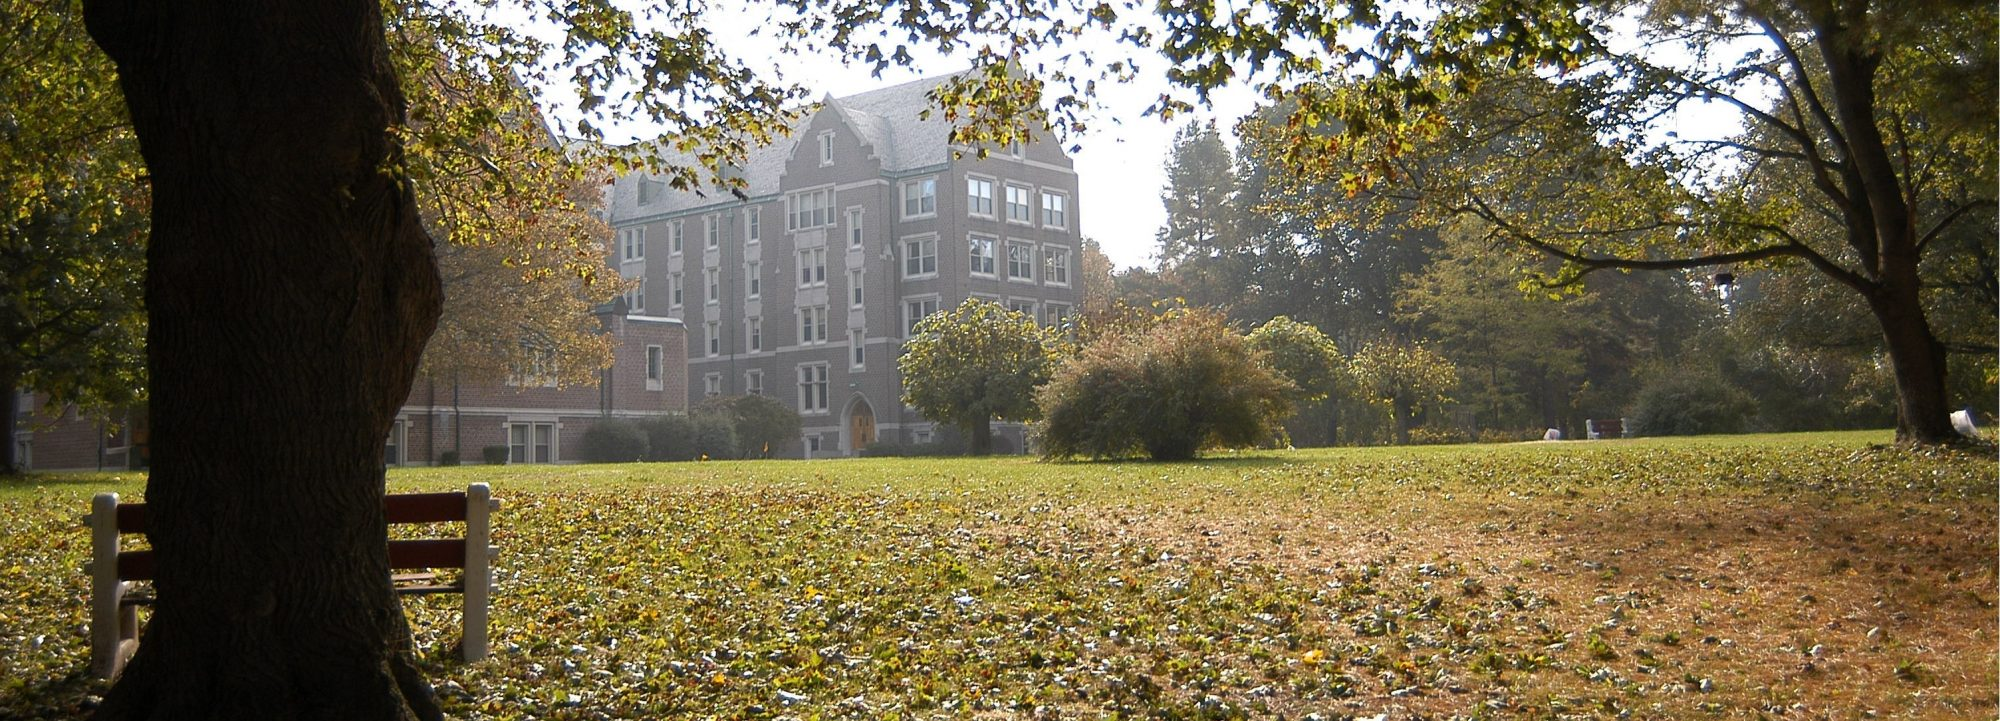 Nazareth College in Fall